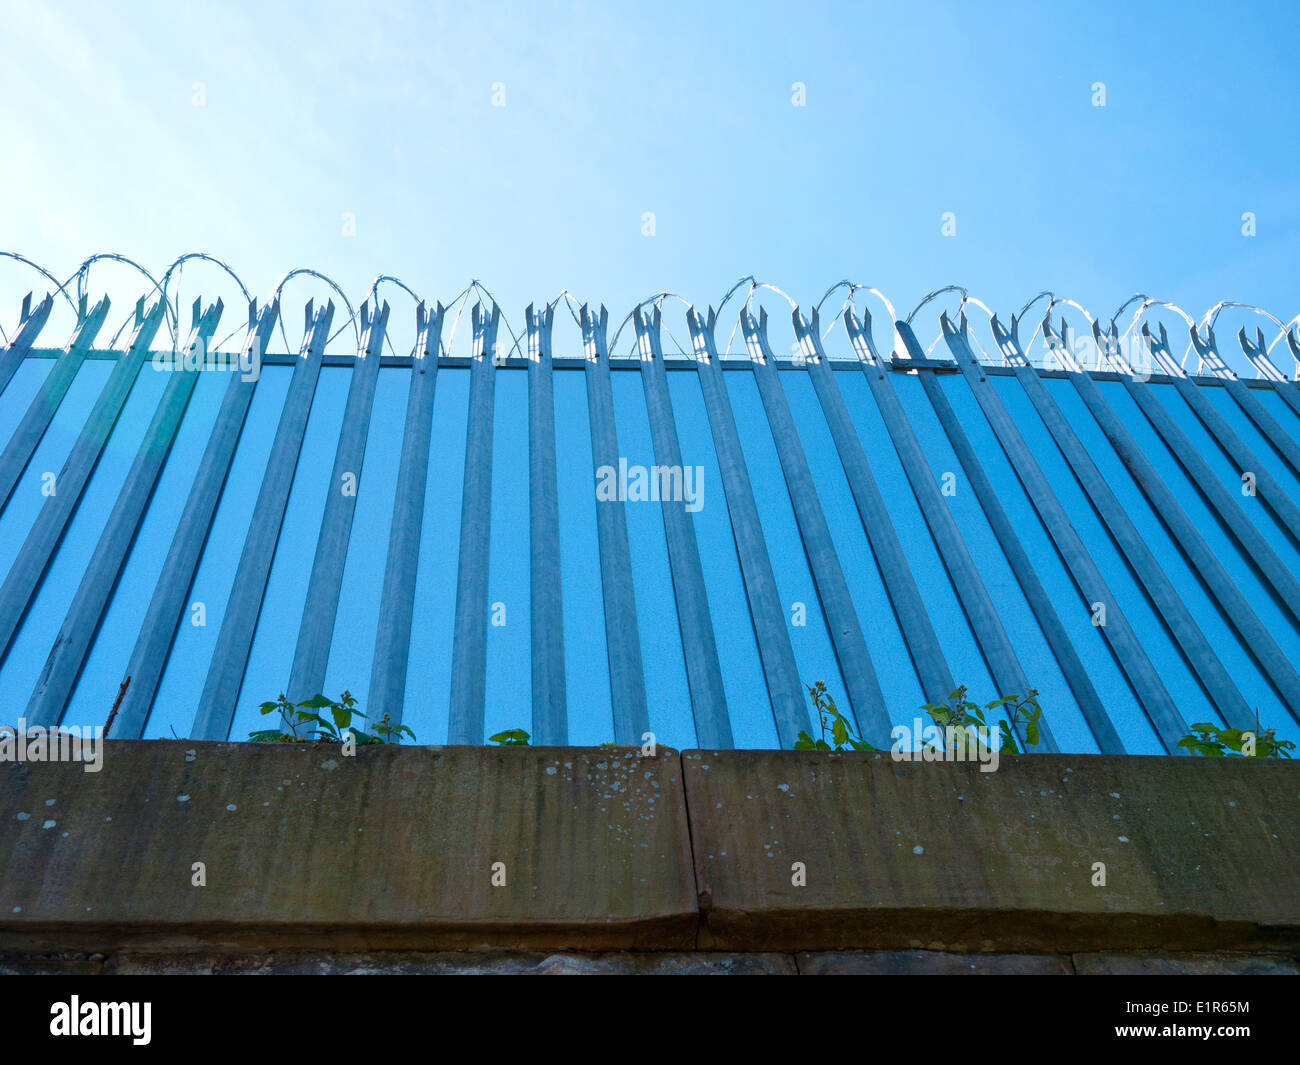 High security fence with razor wire. - Stock Image